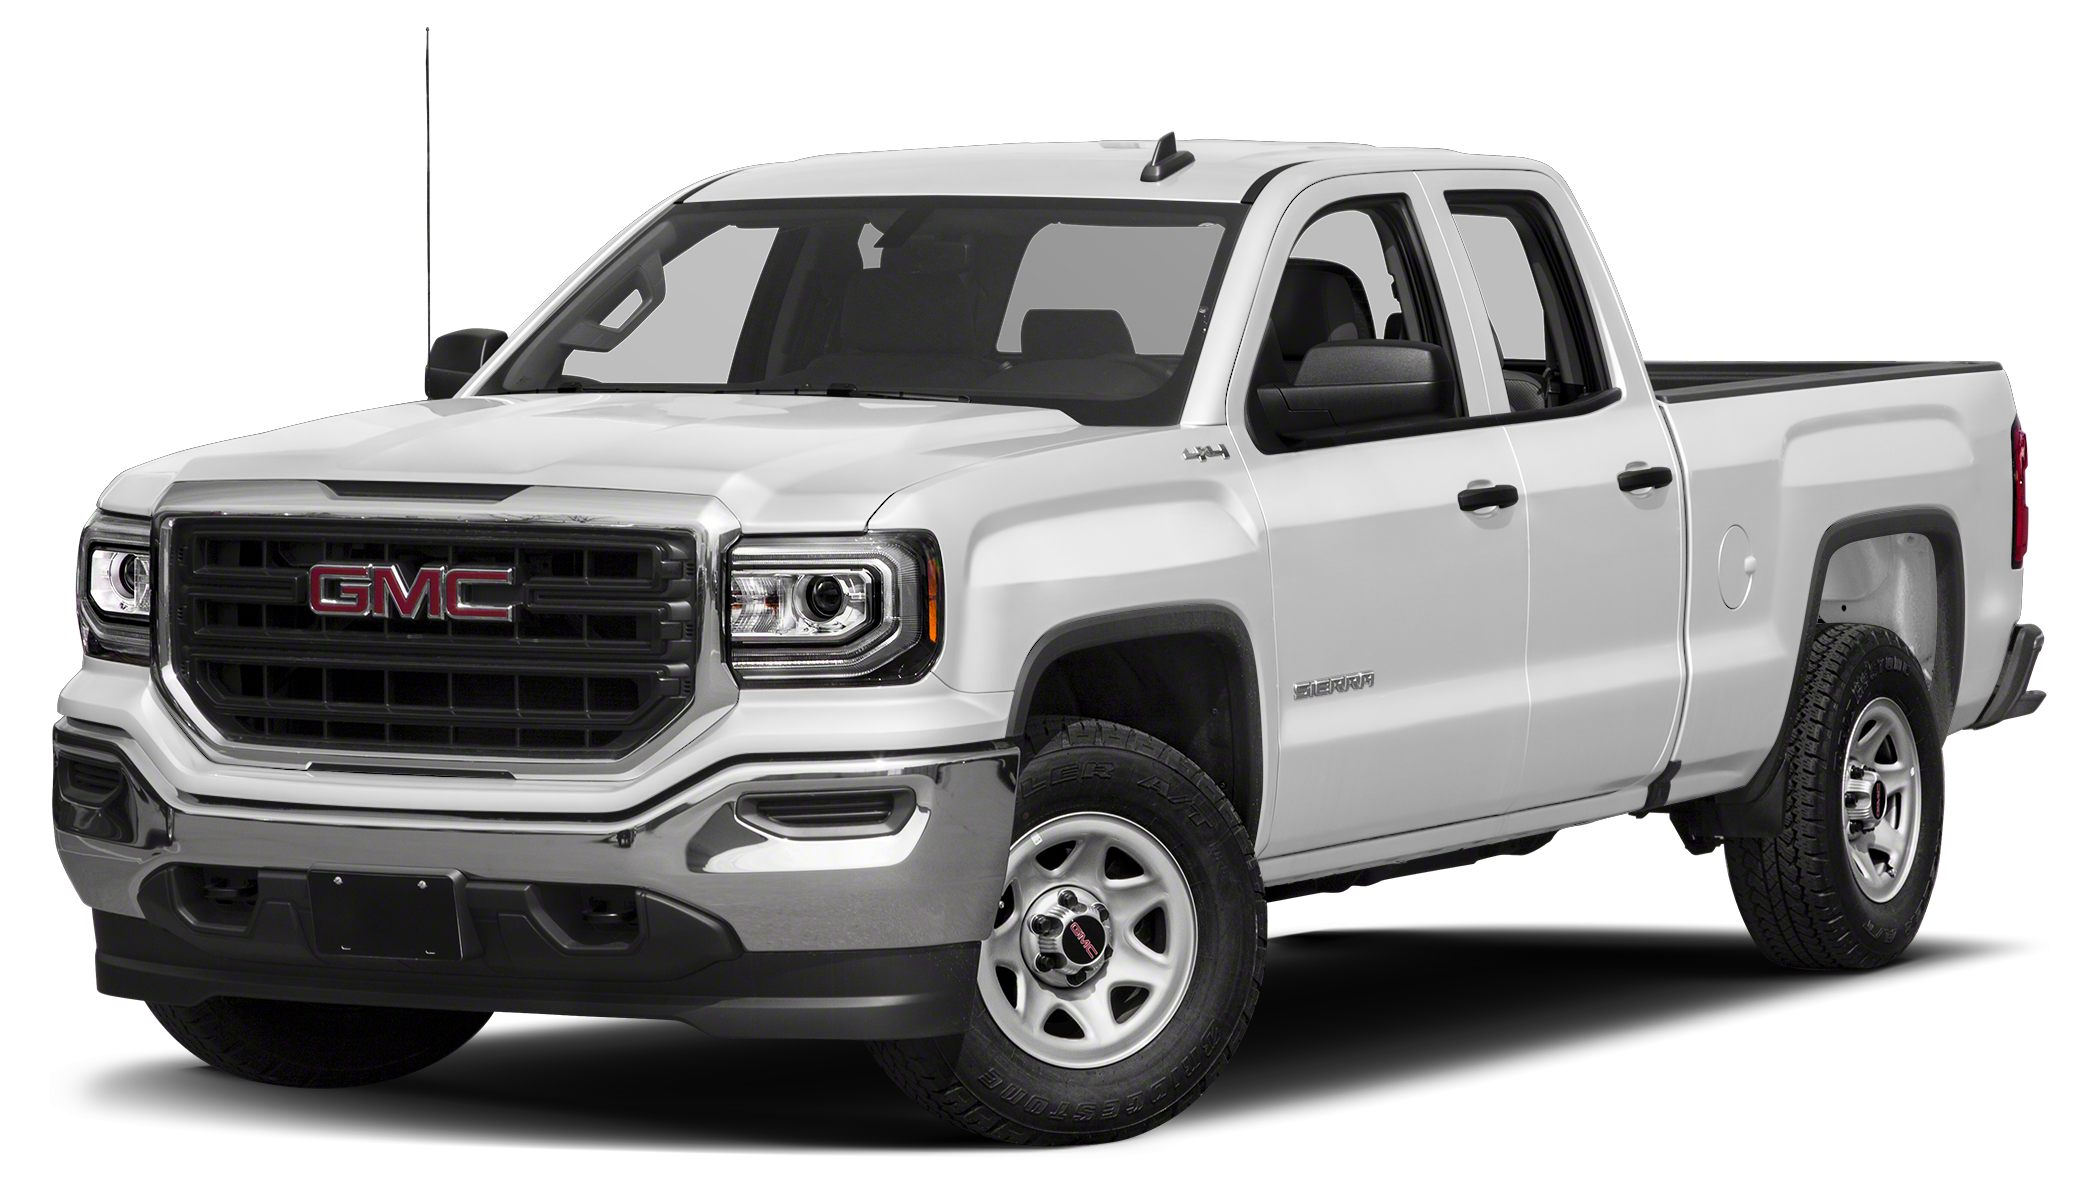 2018 GMC Sierra 1500 Base Youll love the look and feel of this 2018 GMC Sierra 1500 Base which f